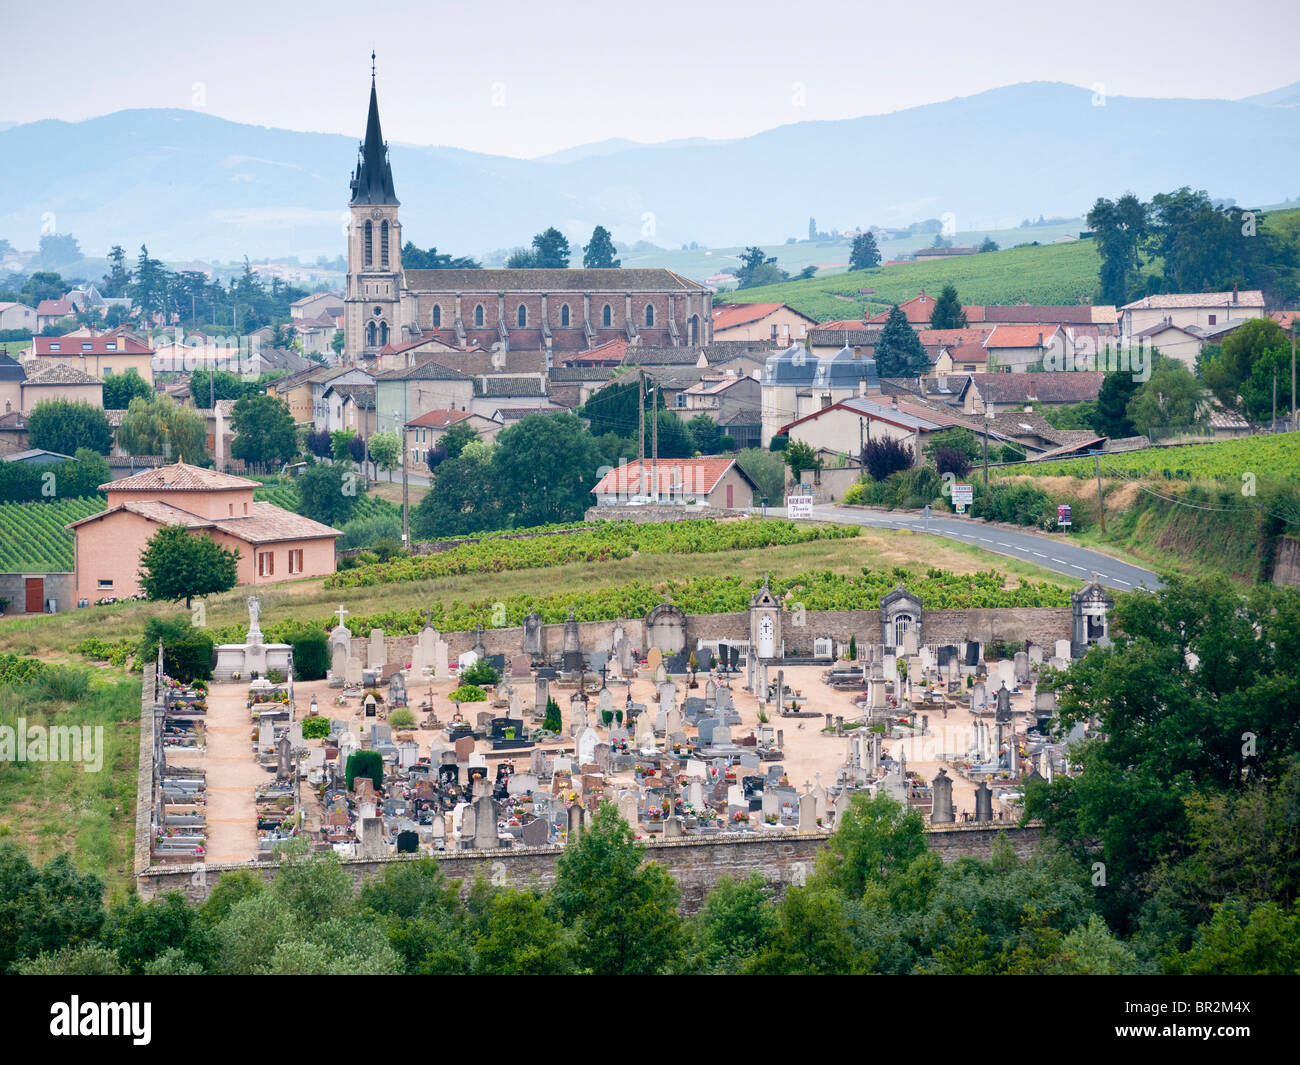 Graveyard and church at Fleurie in Beaujolais, France - Stock Image